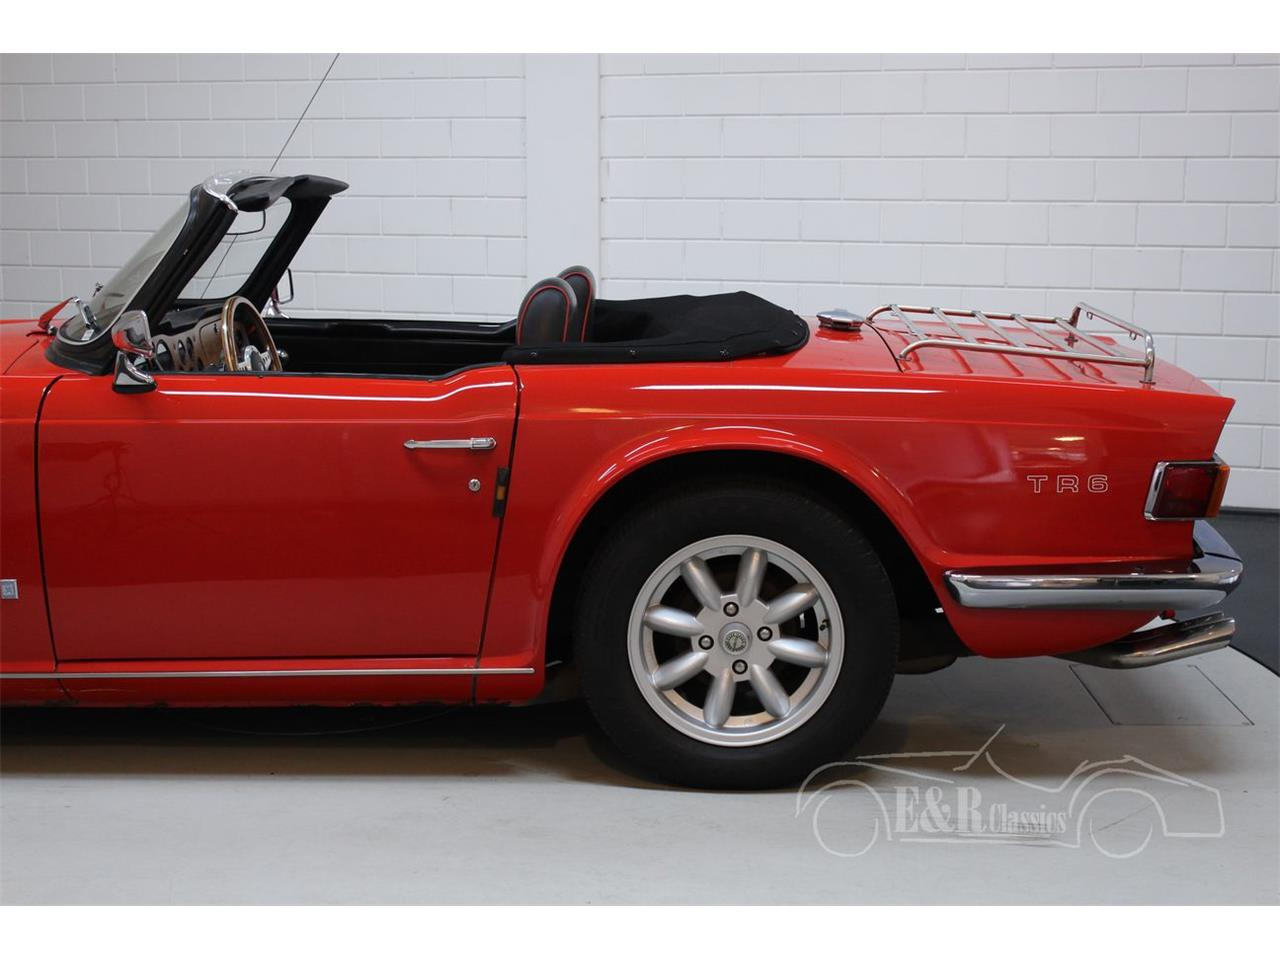 1971 Triumph TR6 (CC-1337763) for sale in Waalwijk, Noord Brabant